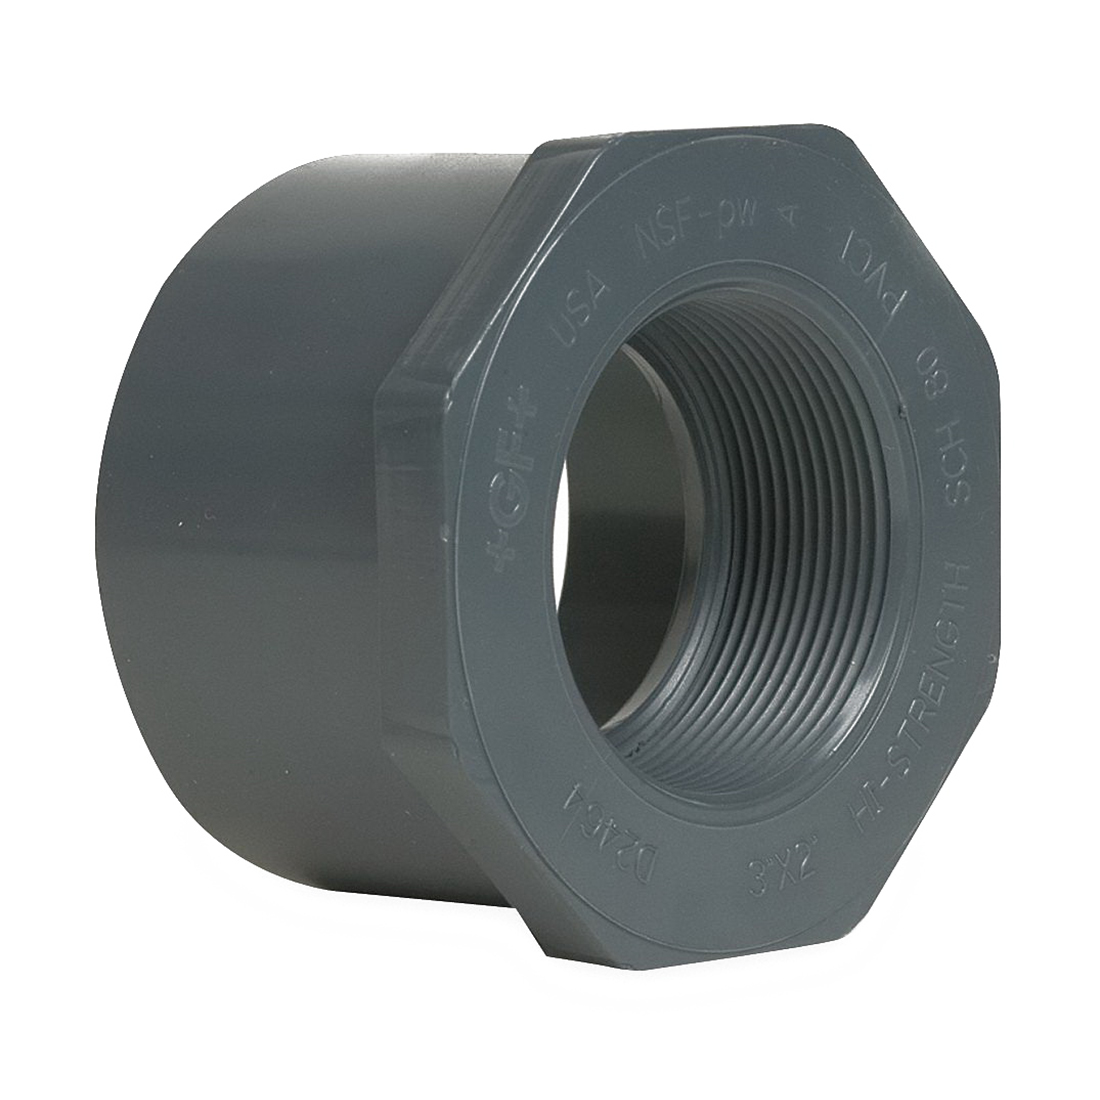 Gray PVC SCH 80 Flush Style Reducer Bushing, 3/4 in x 1/2 in, Spigot x FNPT